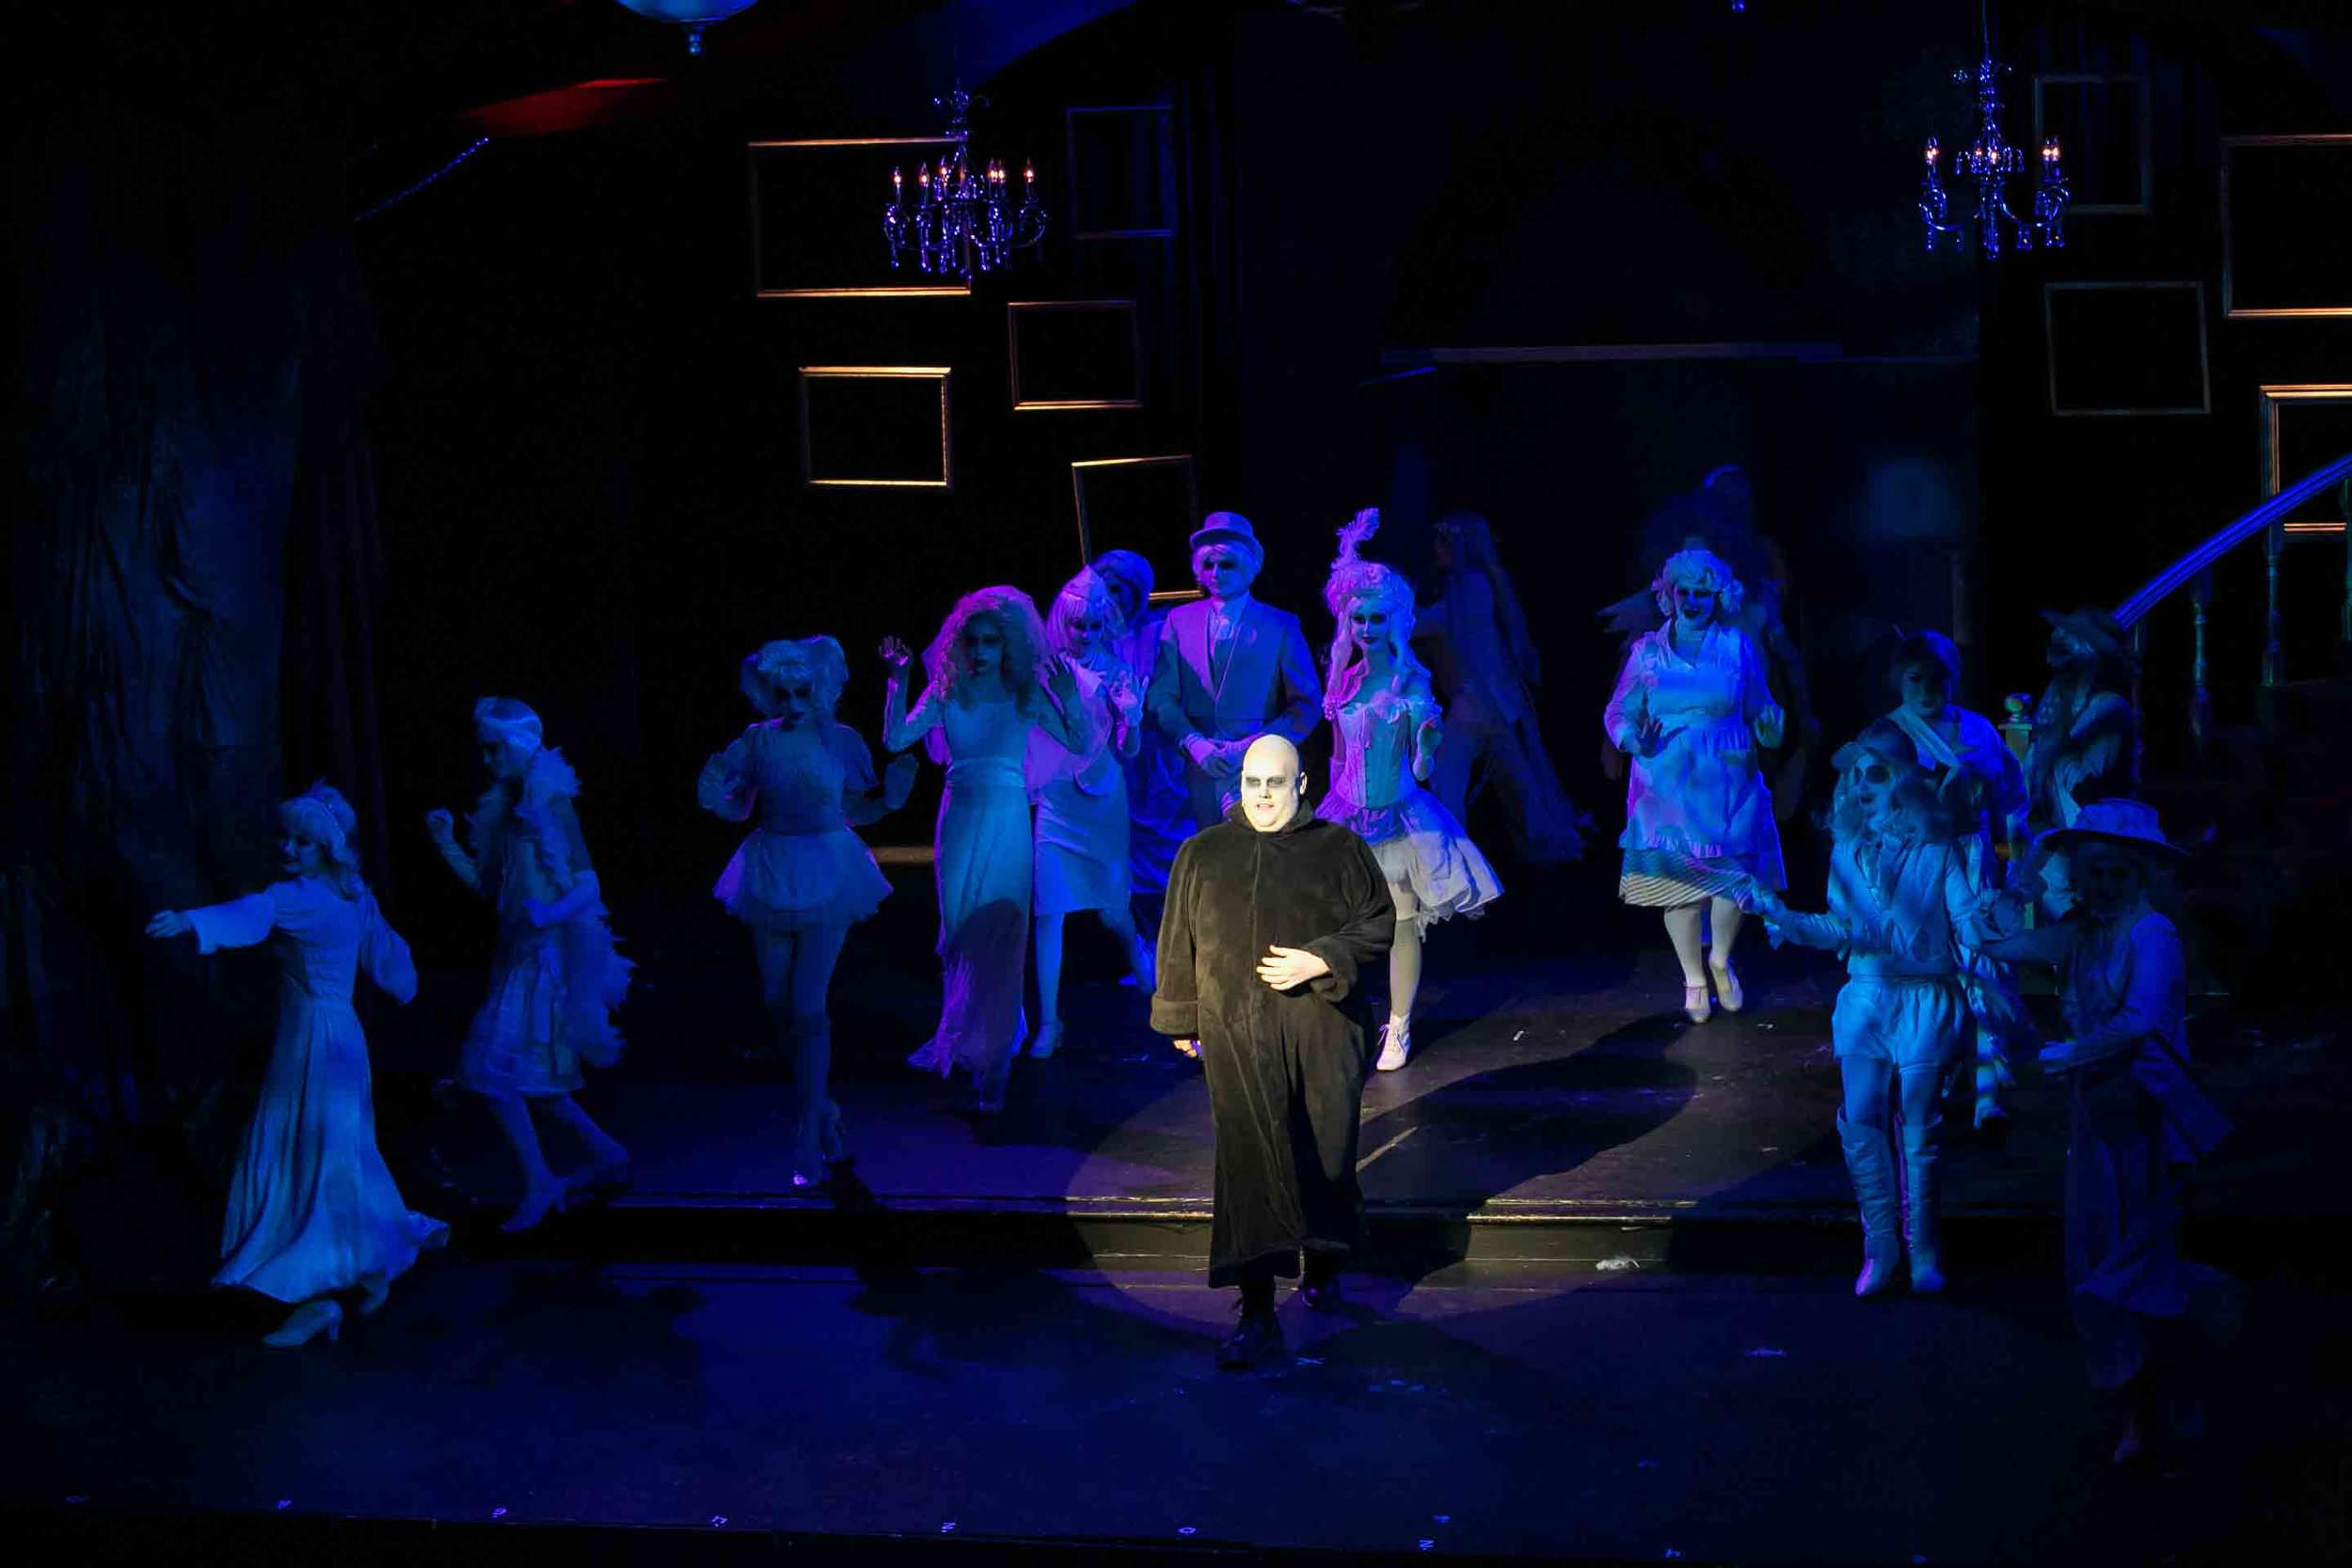 6-19-16 Addams Family Creepy Cast 0142.jpg